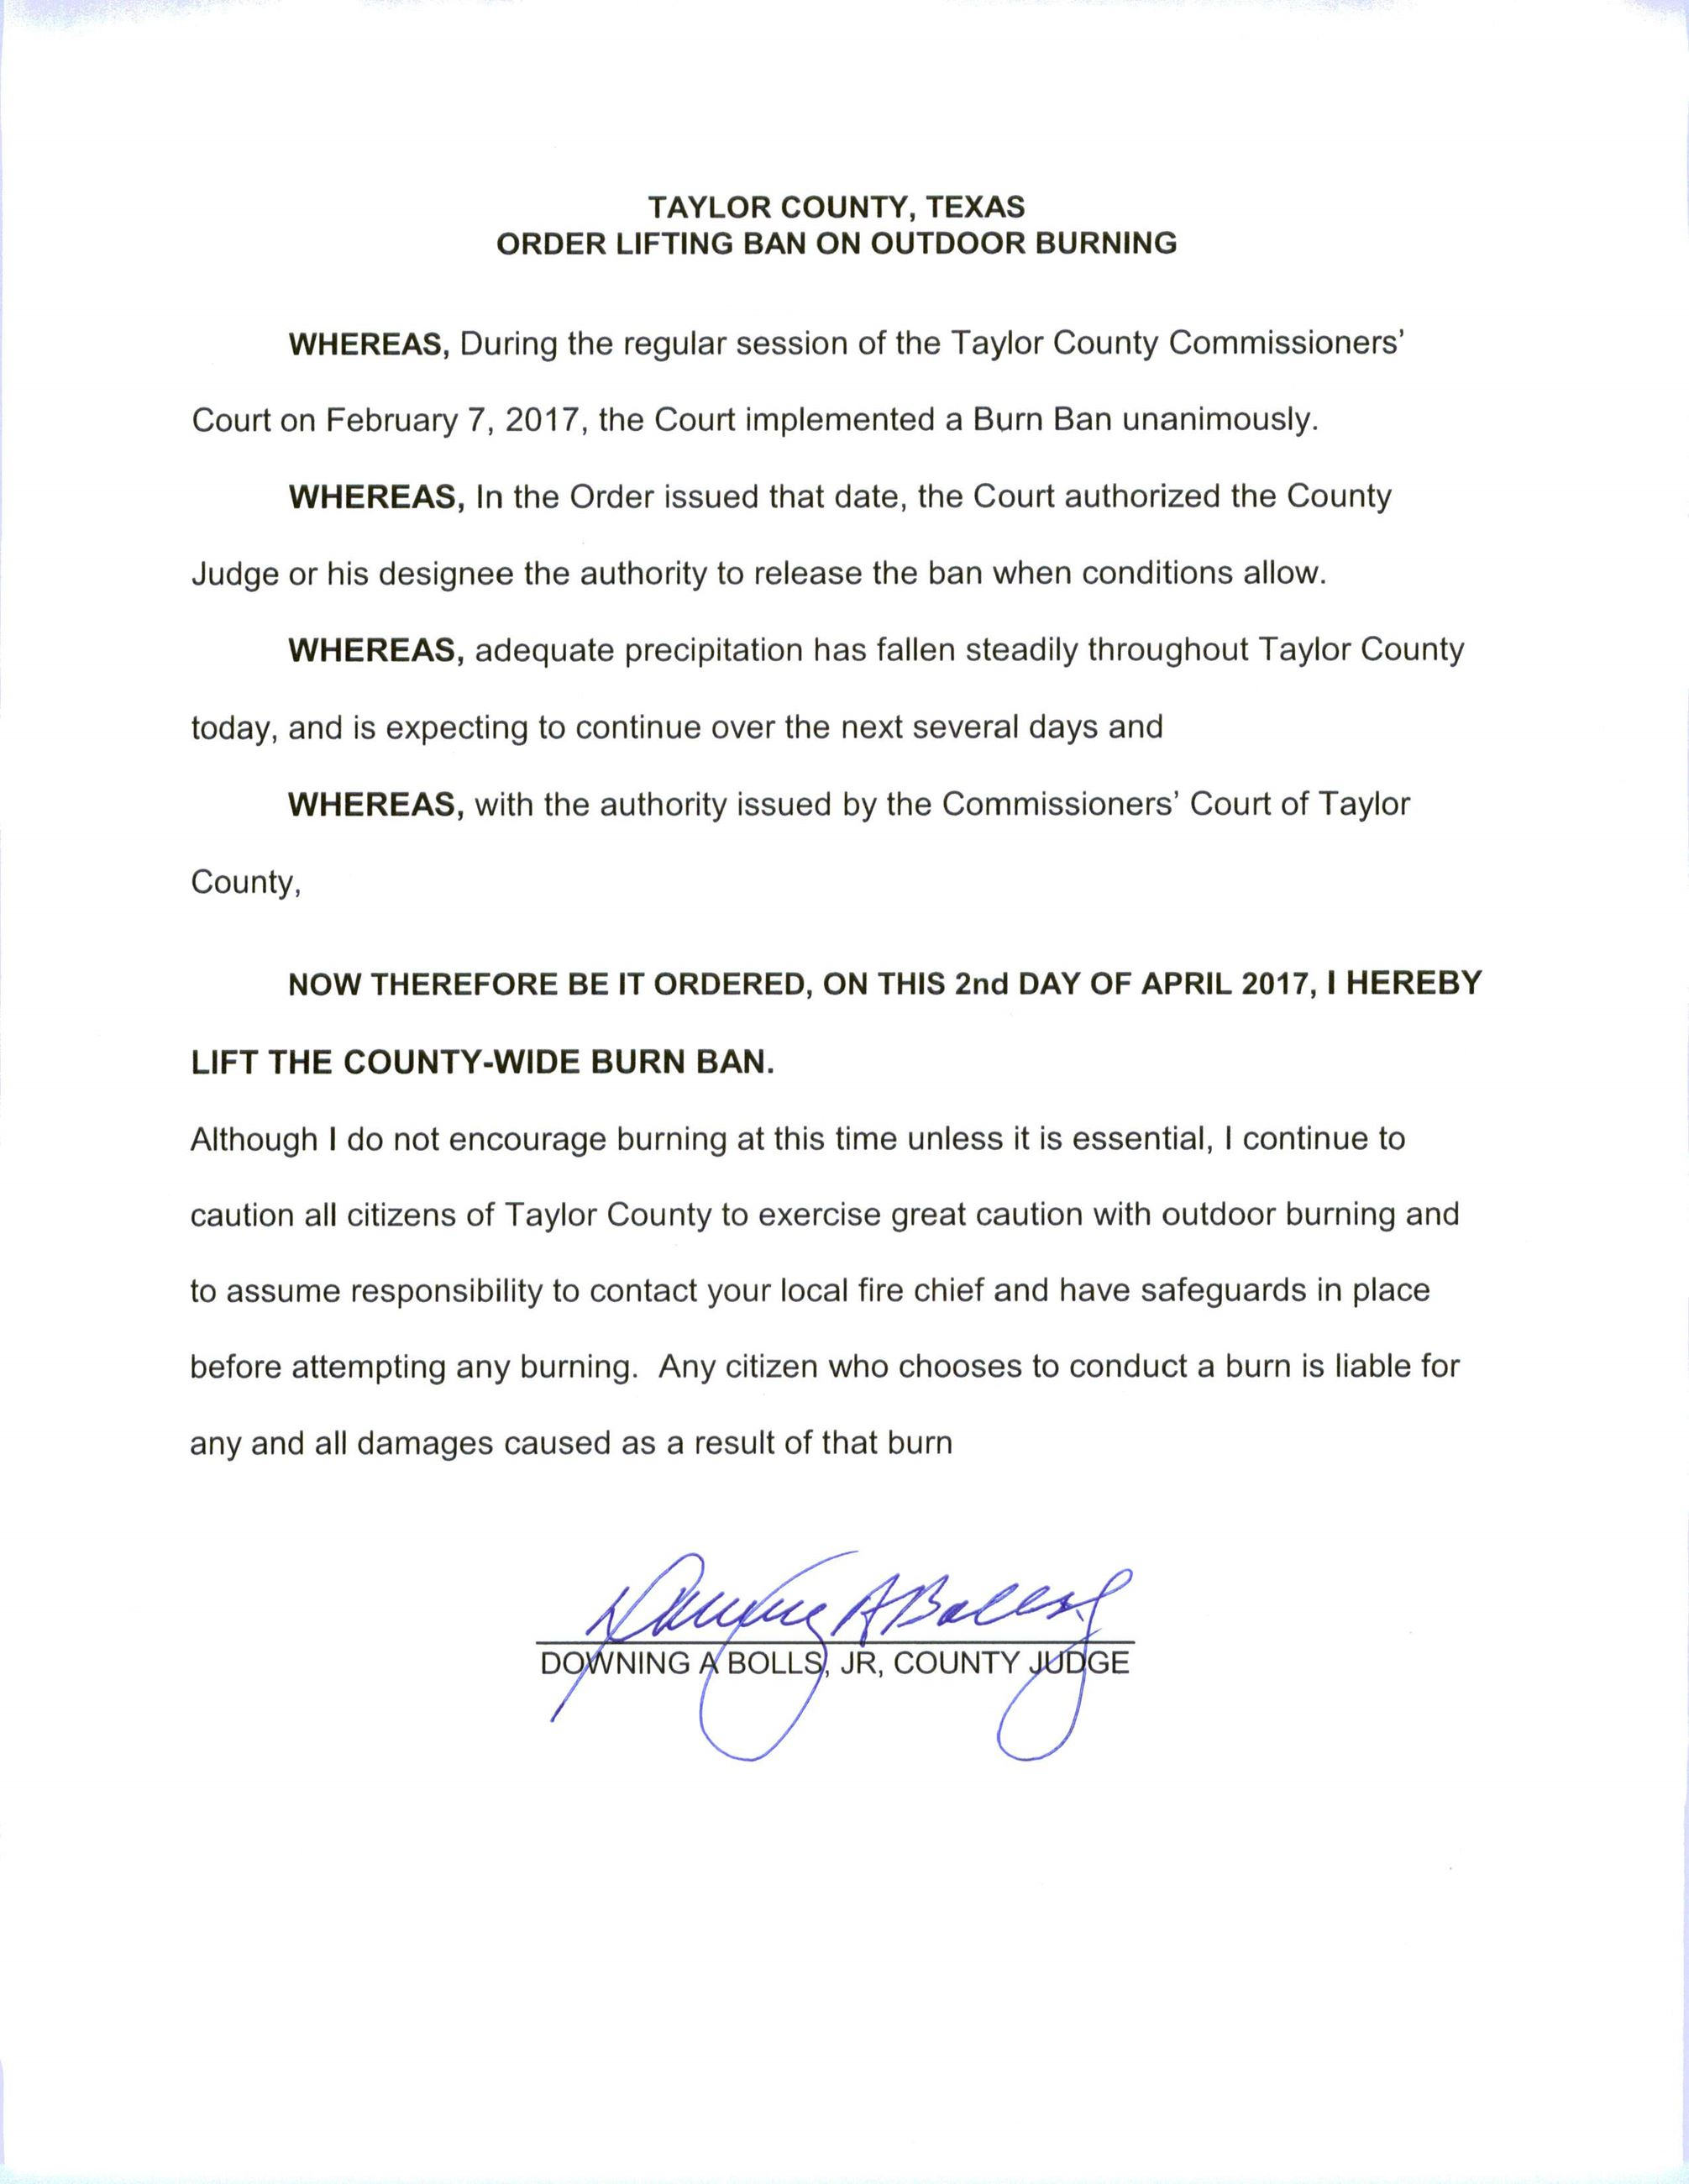 ORDER LIFTING BURN BAN APRIL 2, 2017